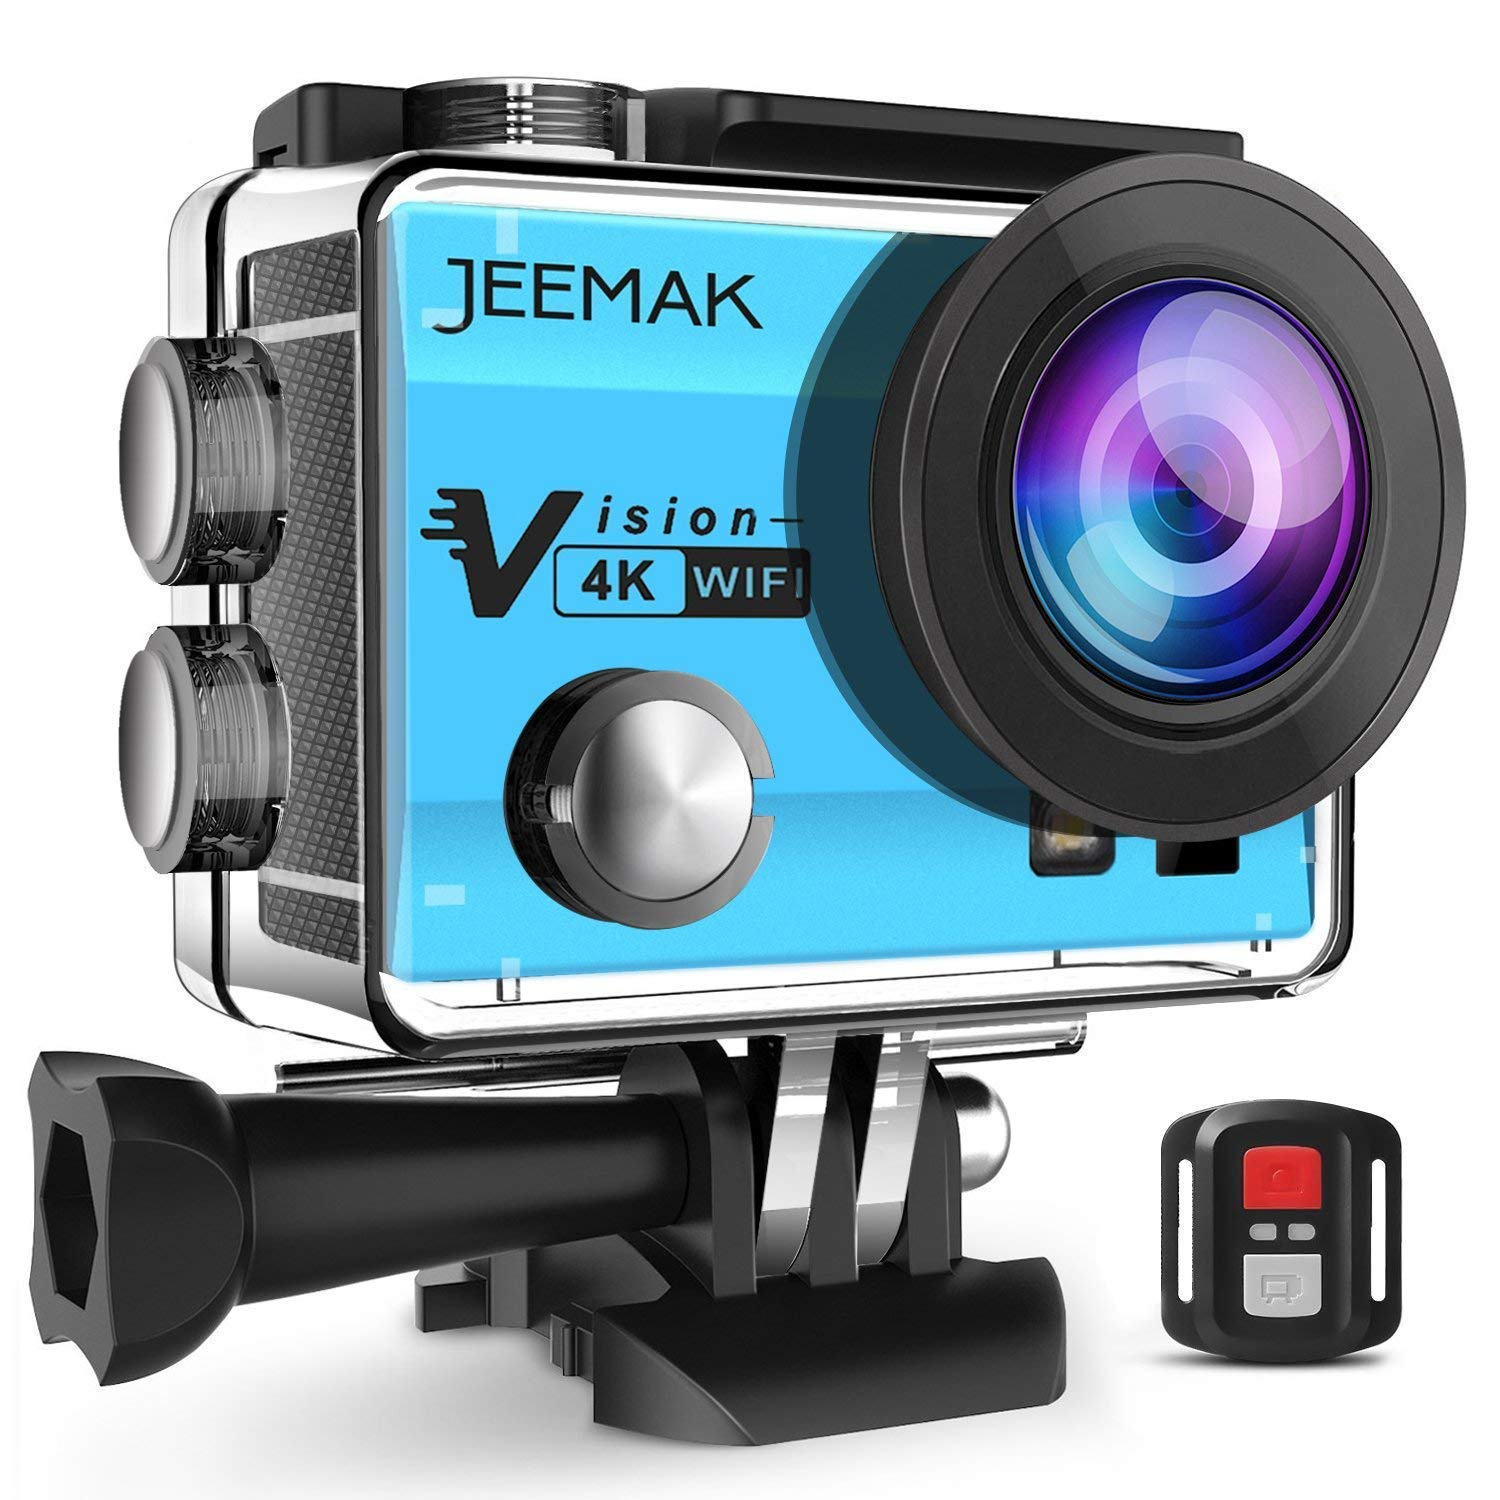 JEEMAK 4K Action Cam 16MP WiFi Waterproof Sports Camera 170° Ultra Wide Angle Len with Remote Control 2 Pcs Rechargeable Batteries and Portable Package Blue by JEEMAK